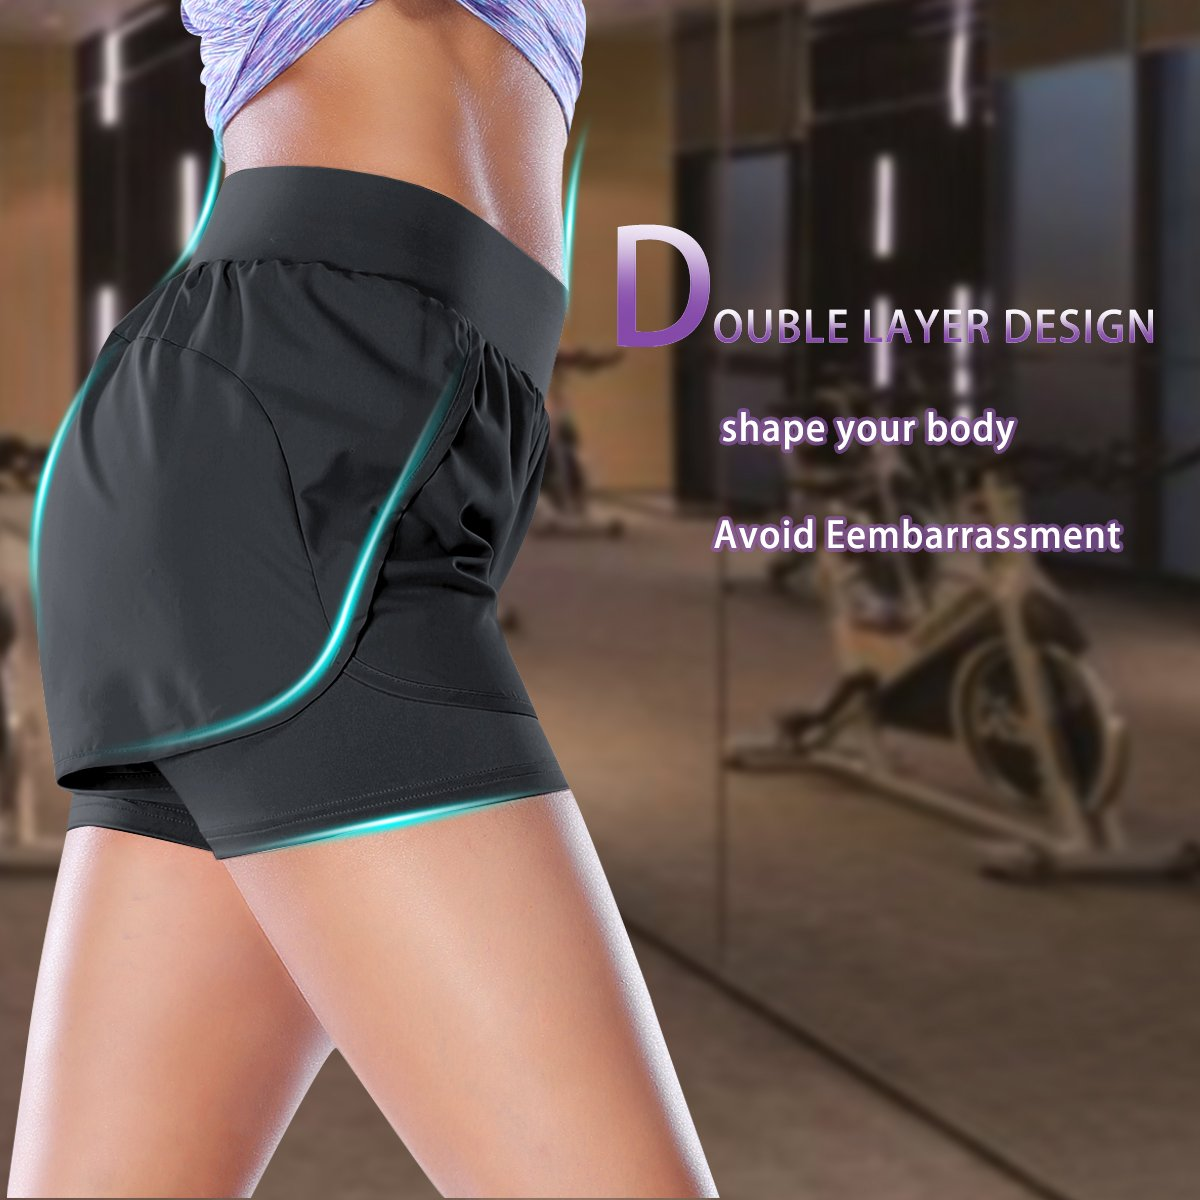 Camel Athletic Shorts for Women Double Layer Gym Workout Sports Yoga Shorts for Running Training Jogging Fitness